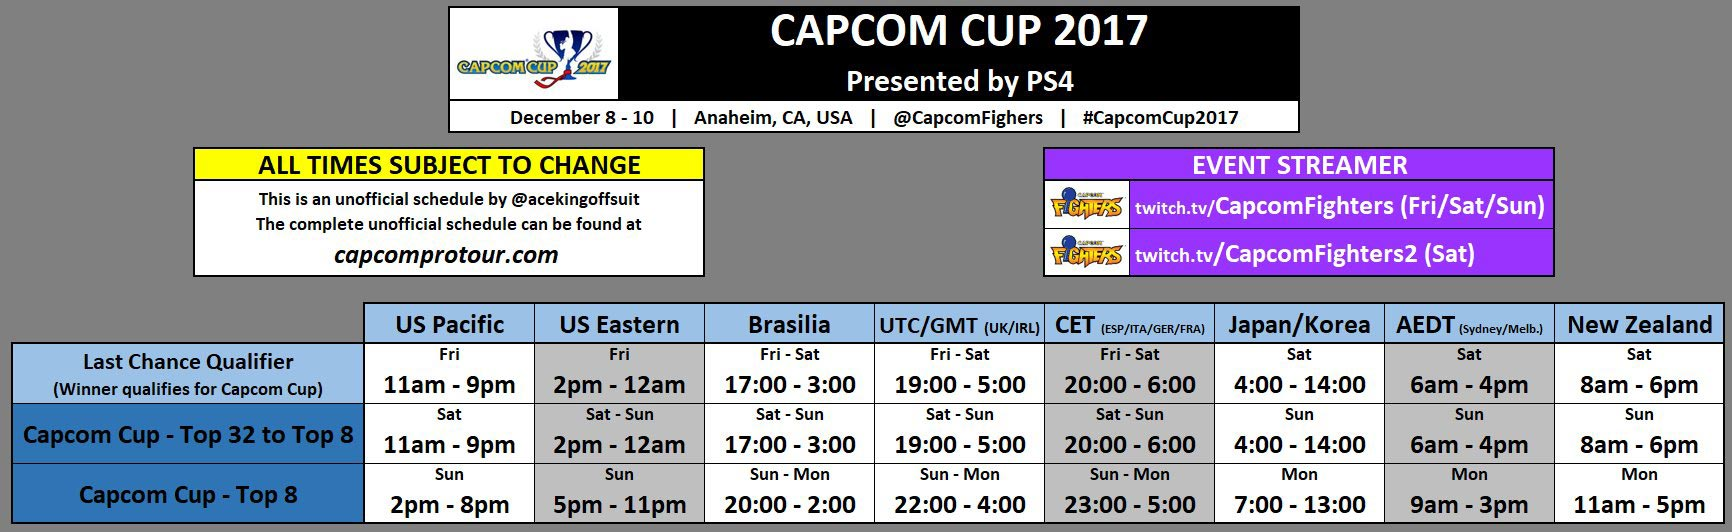 Capcom Cup Event Schedule 1 out of 2 image gallery